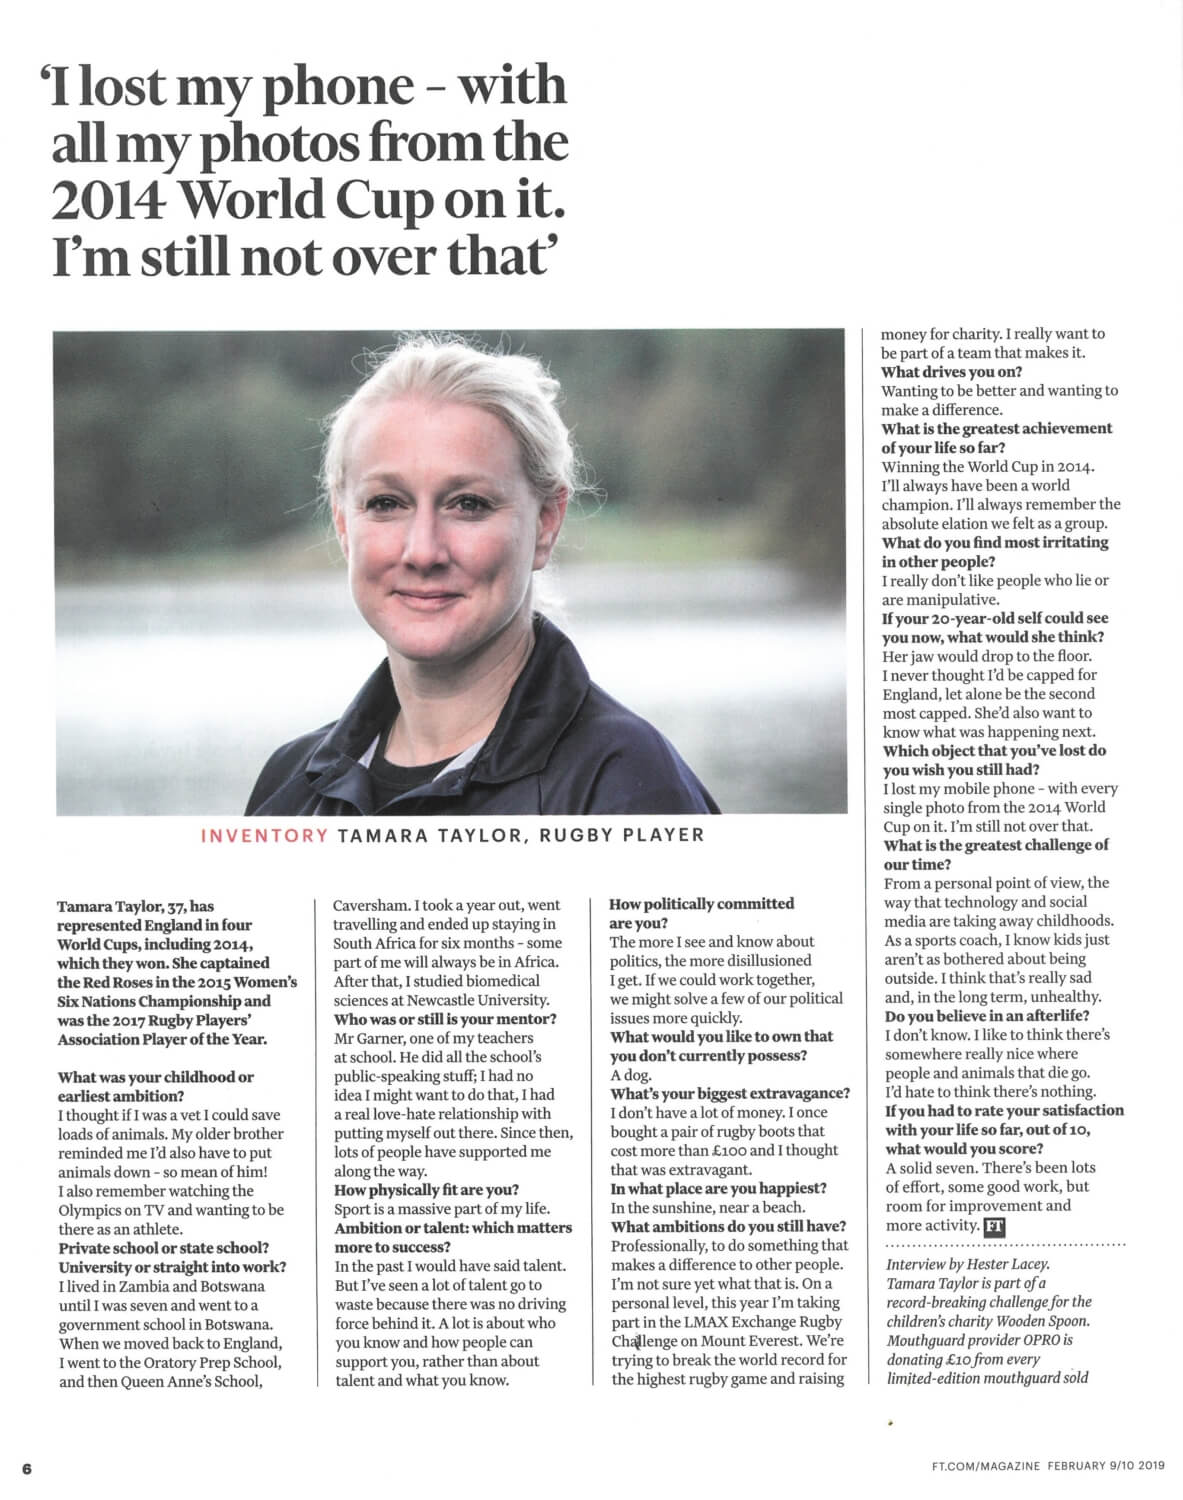 FT - 'I lost my phone - with all my photos from the 2014 World Cup on it.' - Tamara Taylor, Rugby player